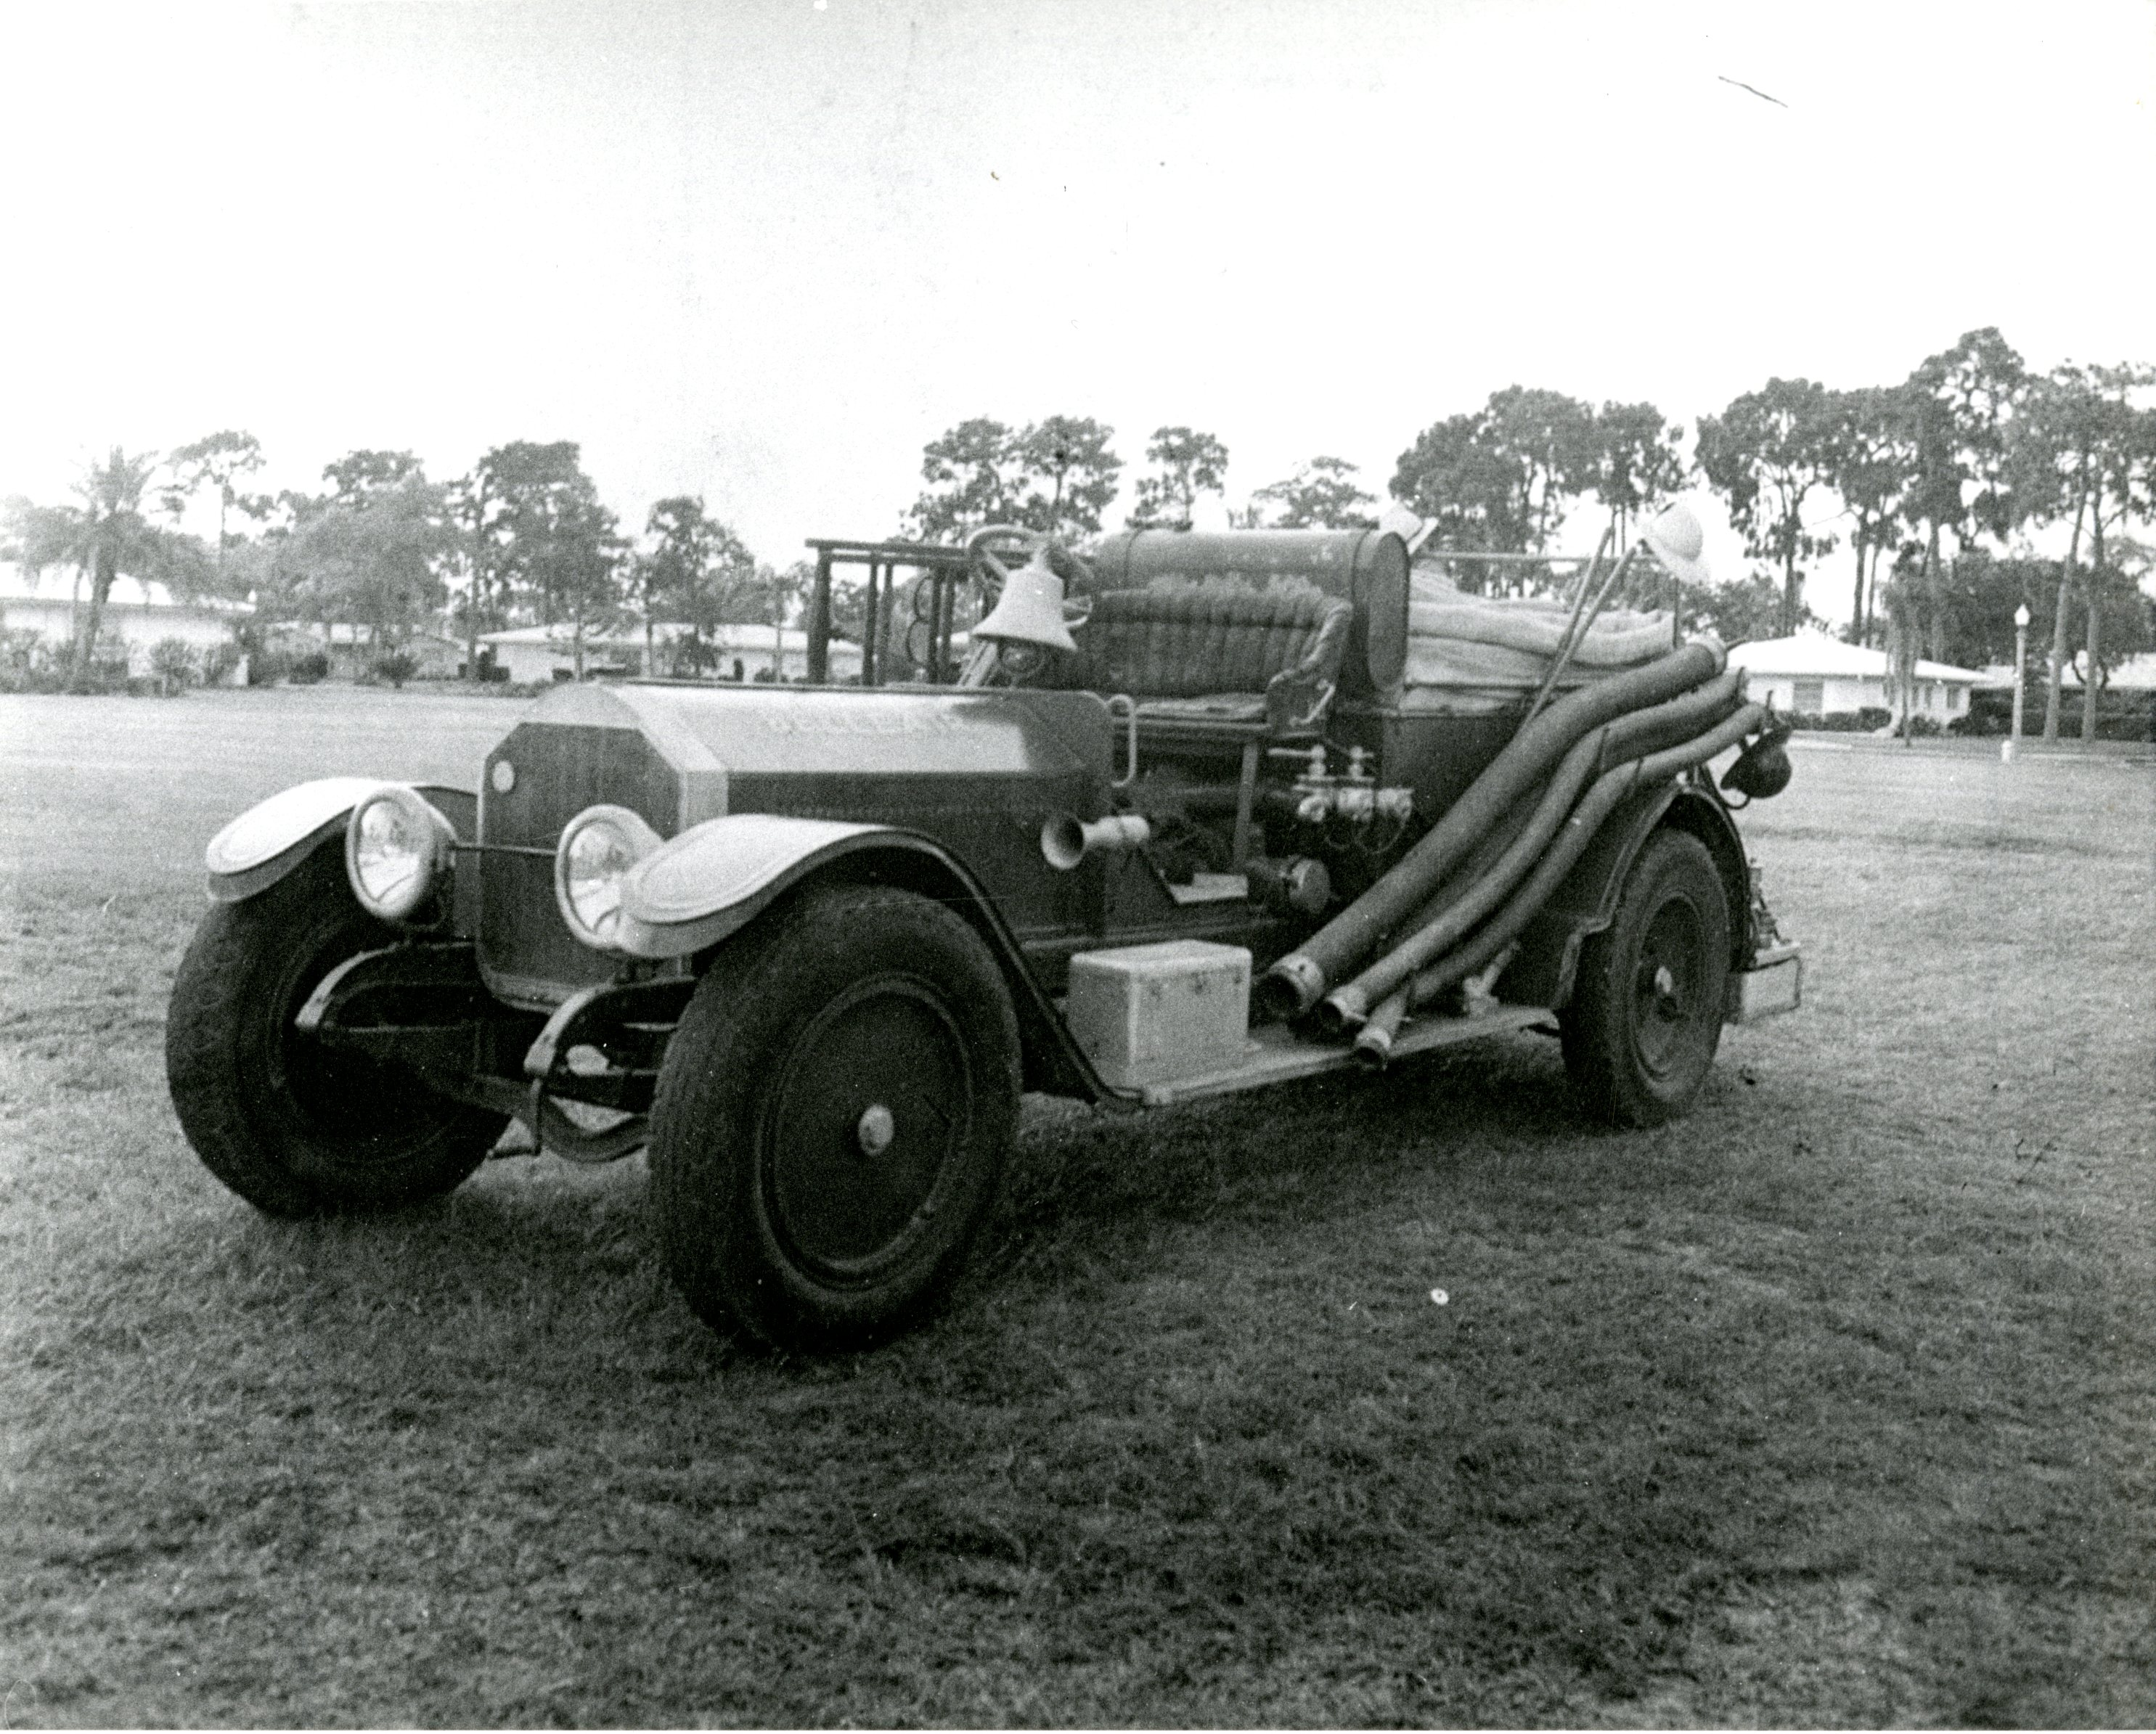 1919 La France fire engine, Belleair, Florida, undated. This engine is now at Heritage Village in Largo, Florida.